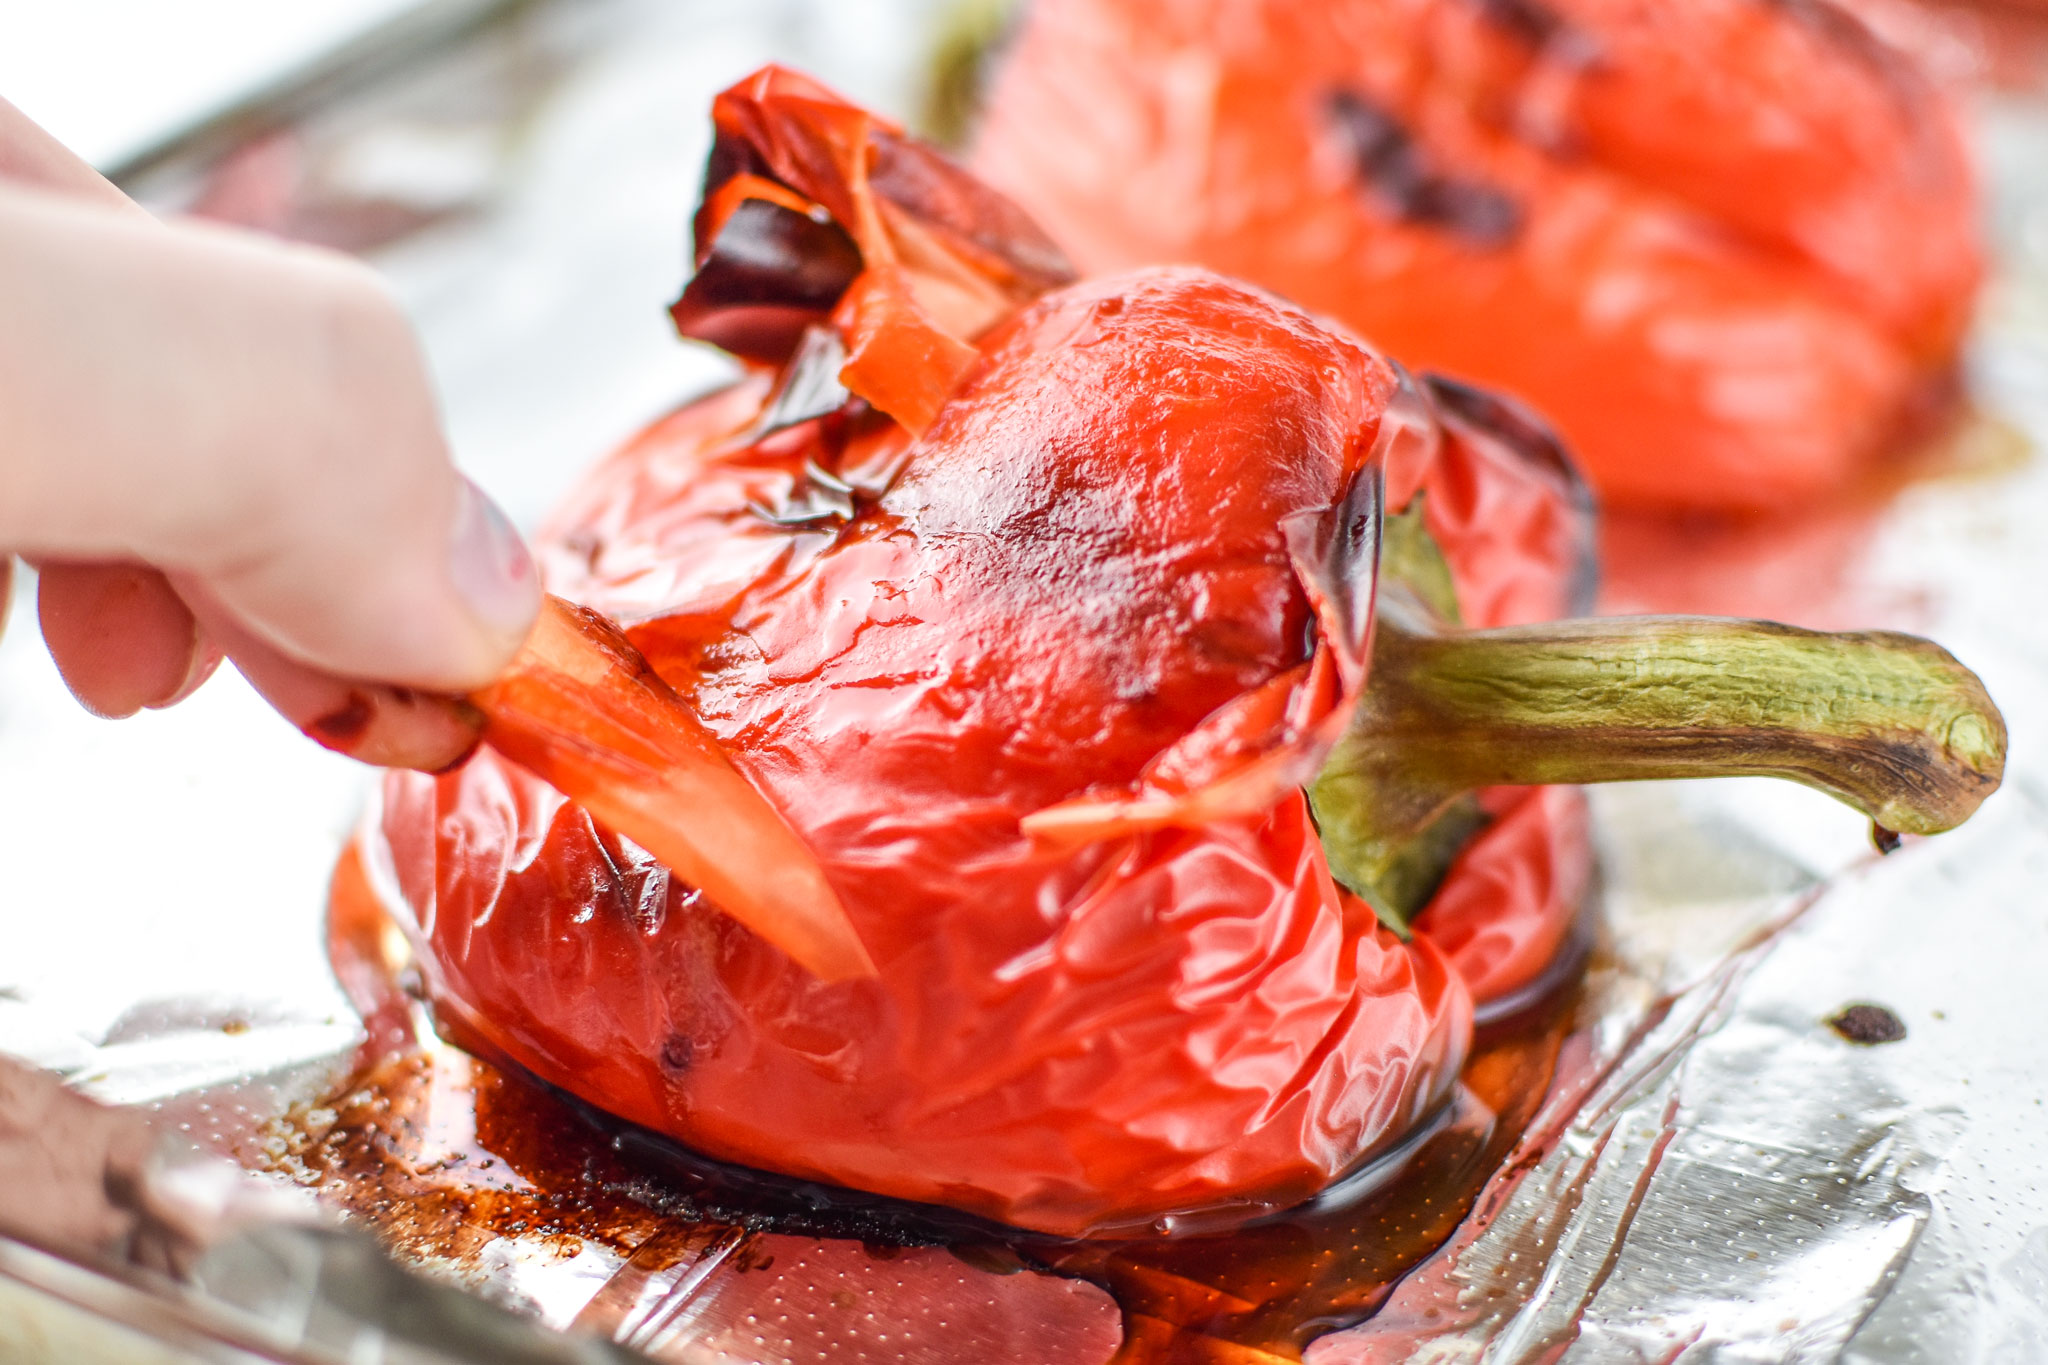 what is looks like under the peel of the roasted red bell peppers